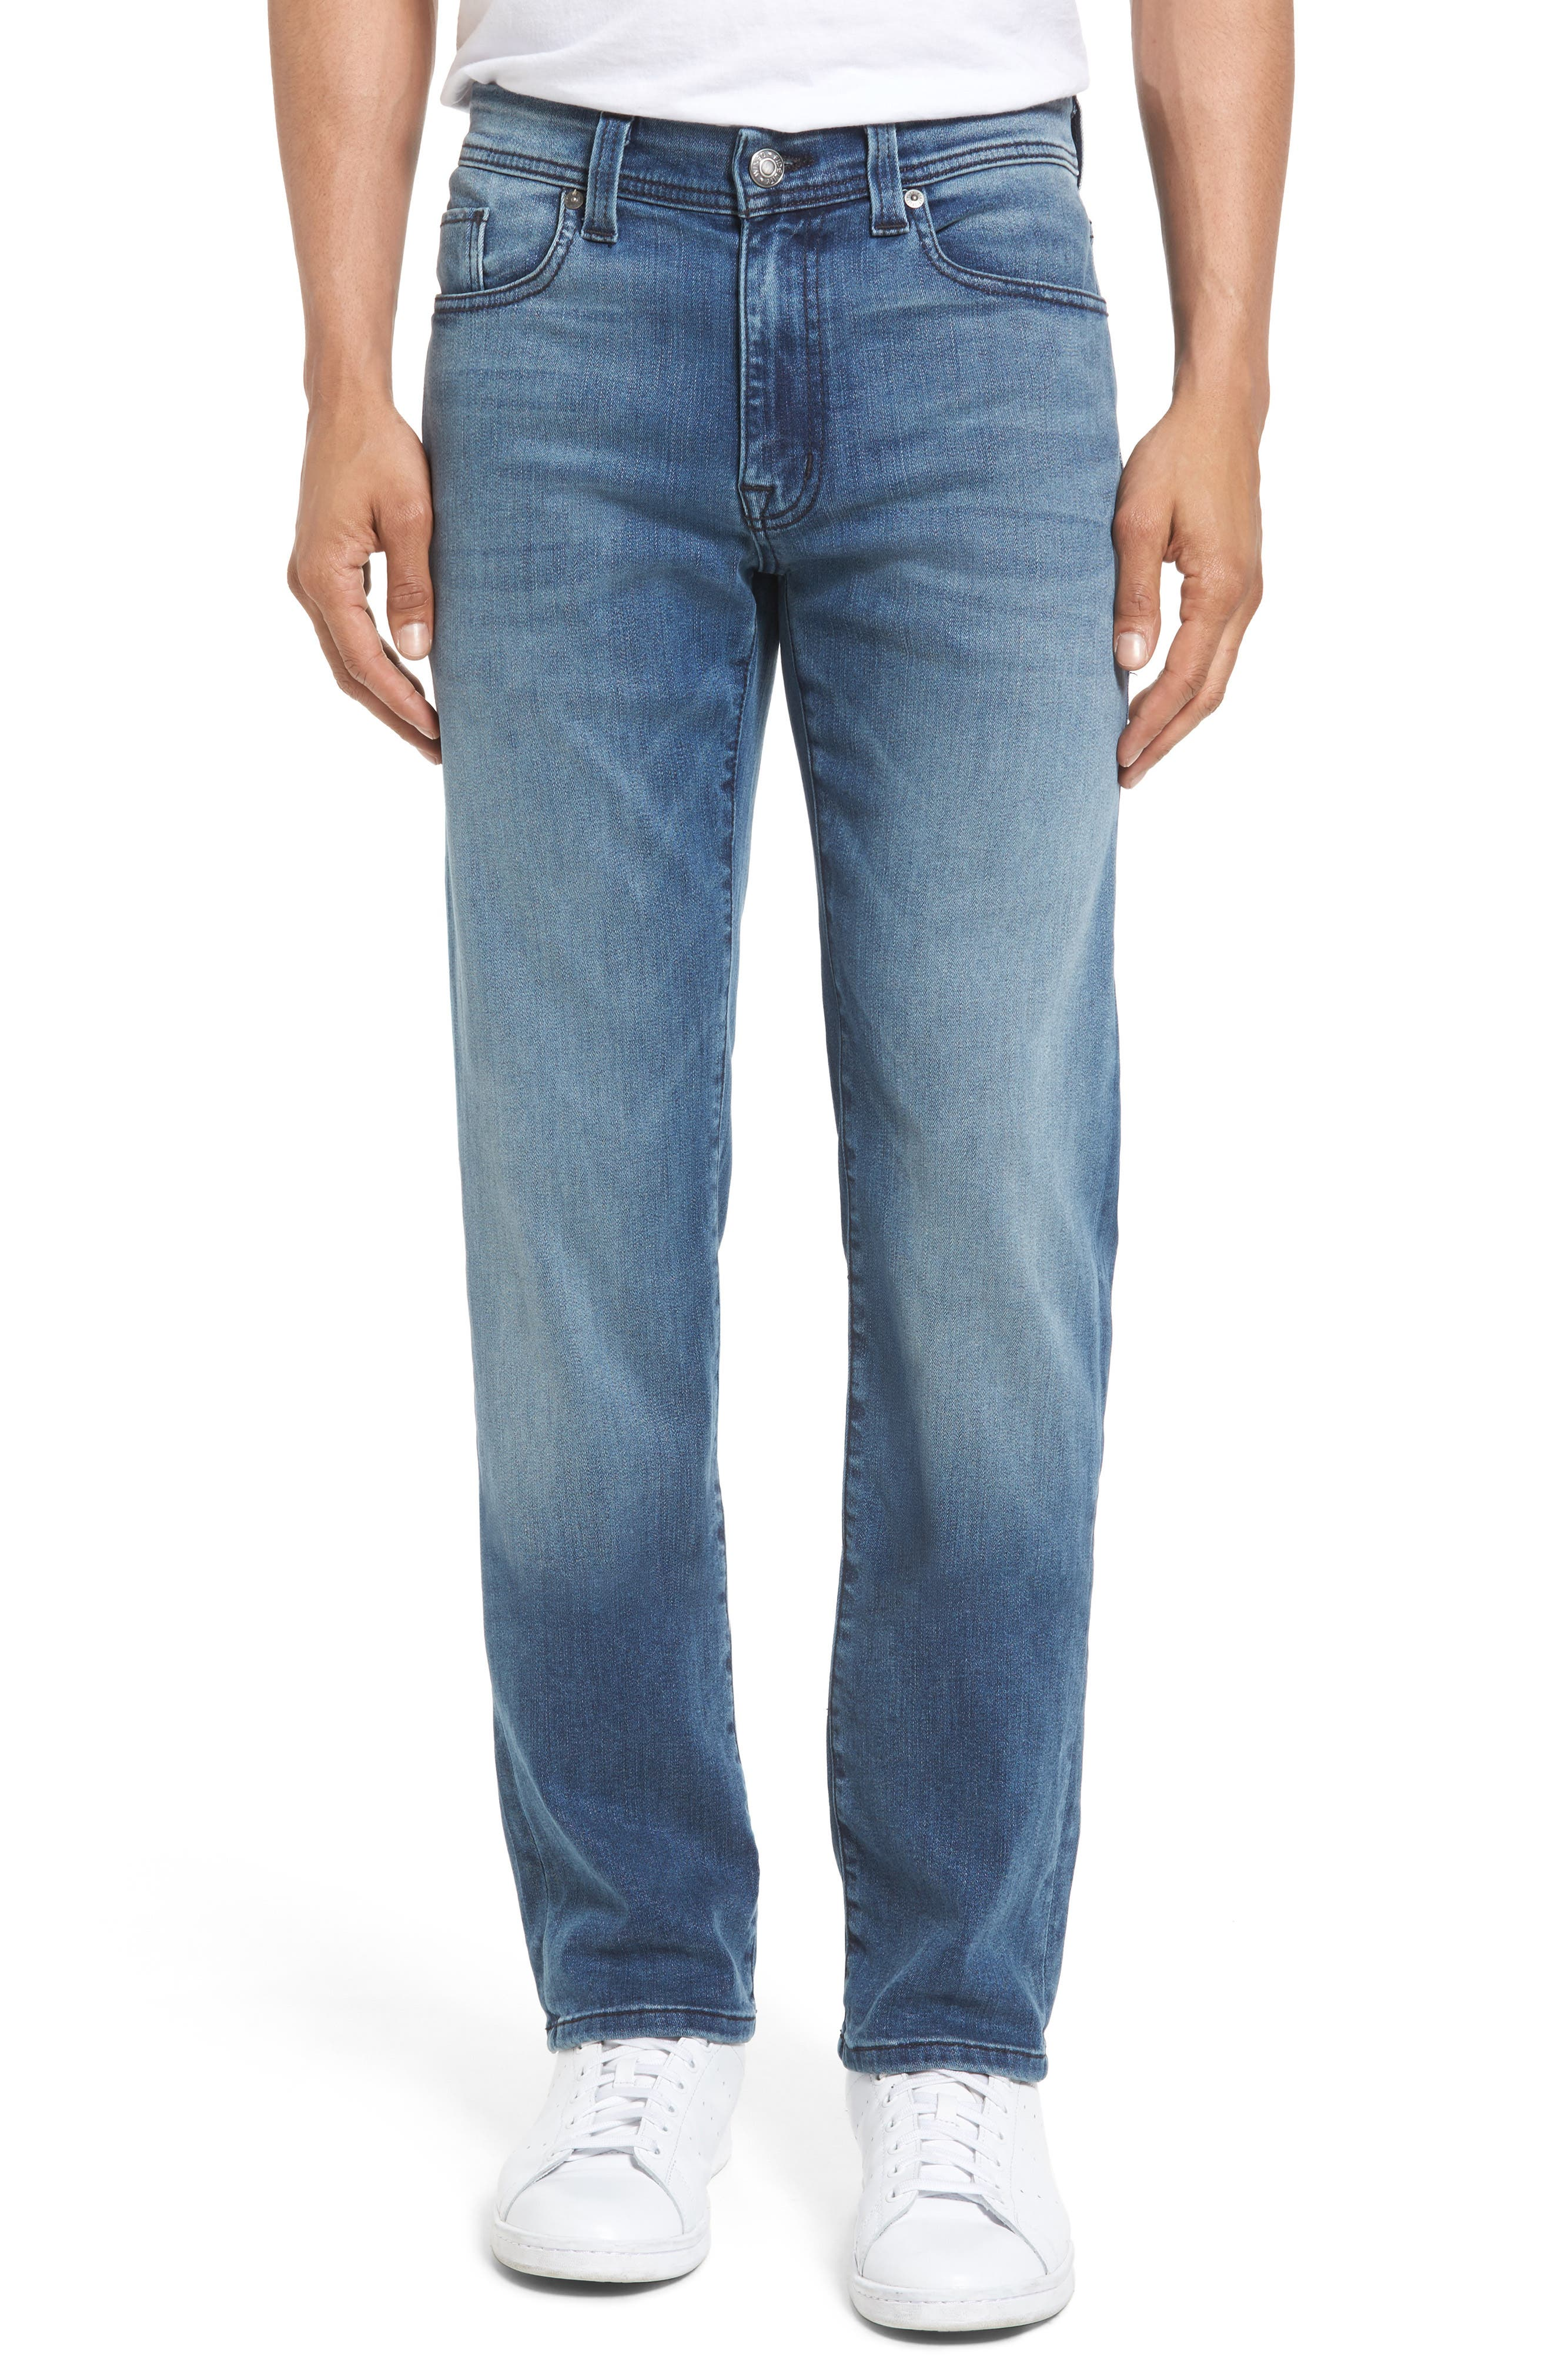 Jimmy Slim Straight Leg Jeans,                             Main thumbnail 1, color,                             Cortana Blue